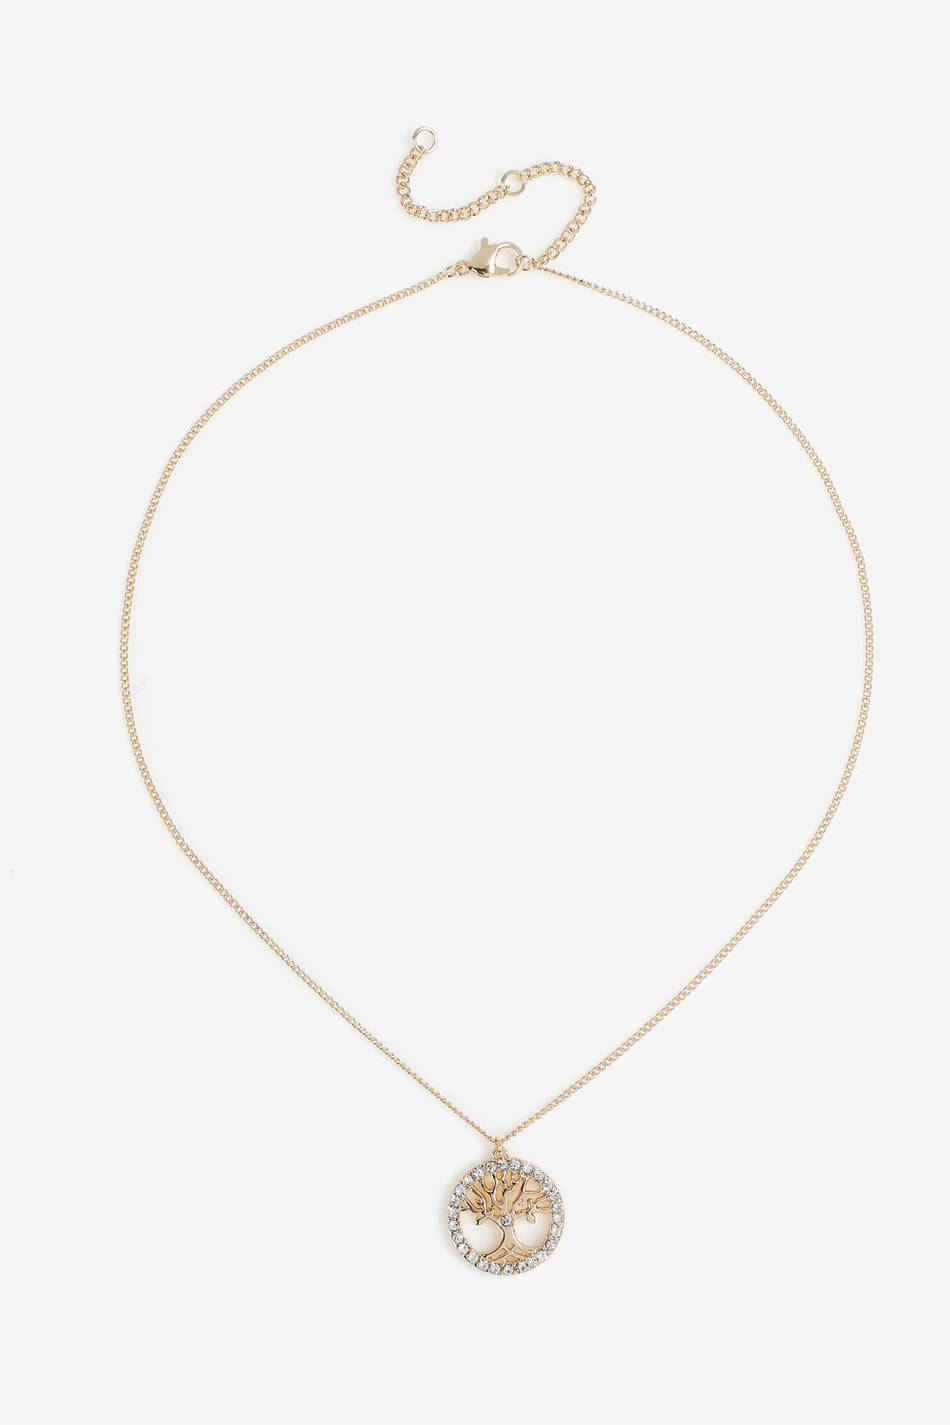 Gina Tricot GOLD CRYSTAL TREE OF LIFE NW